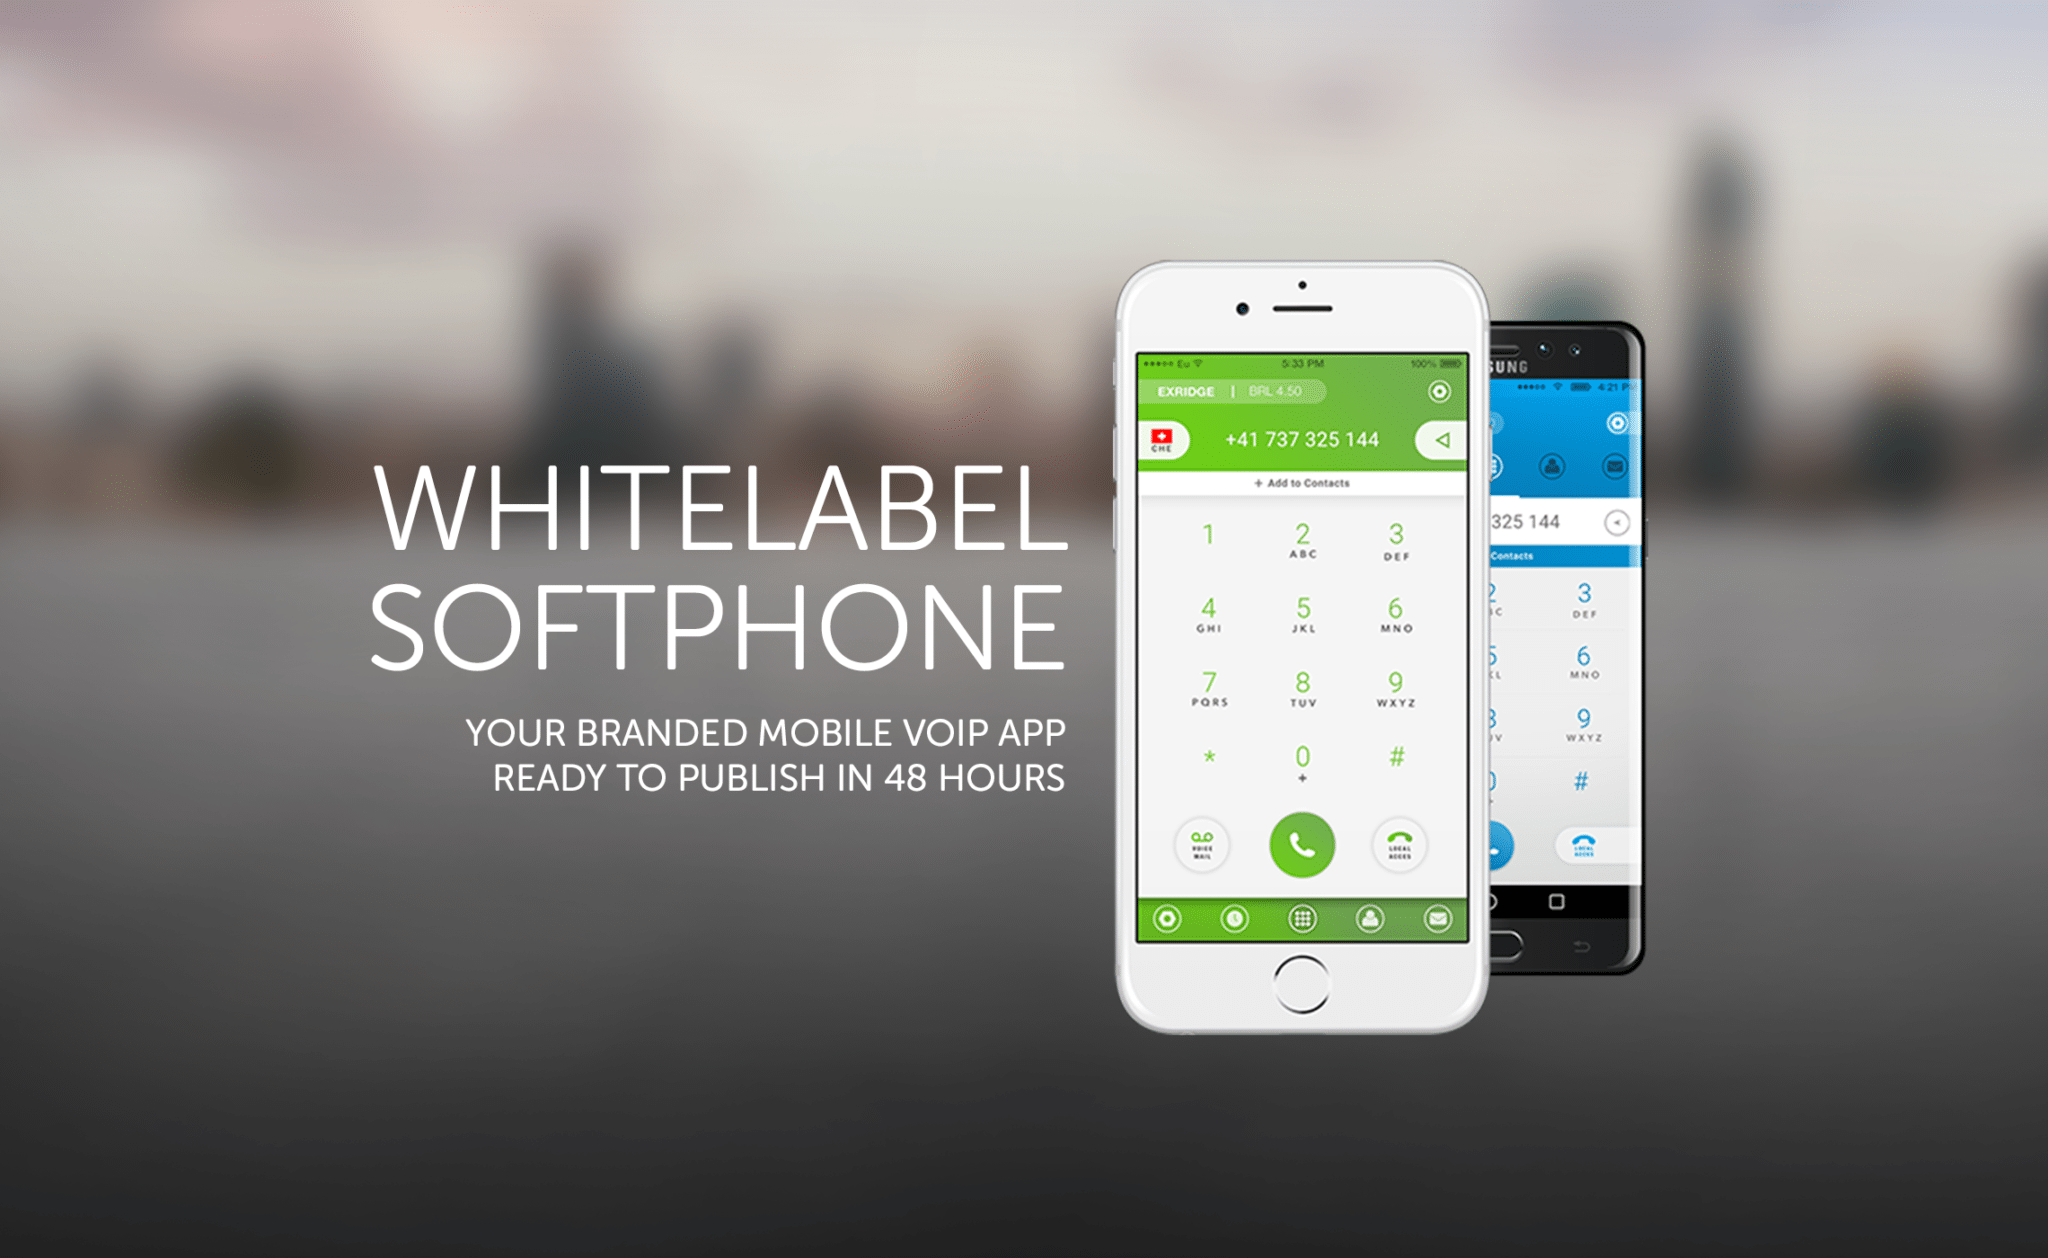 Whitelabel Softphone your branded mobile voip app sip client